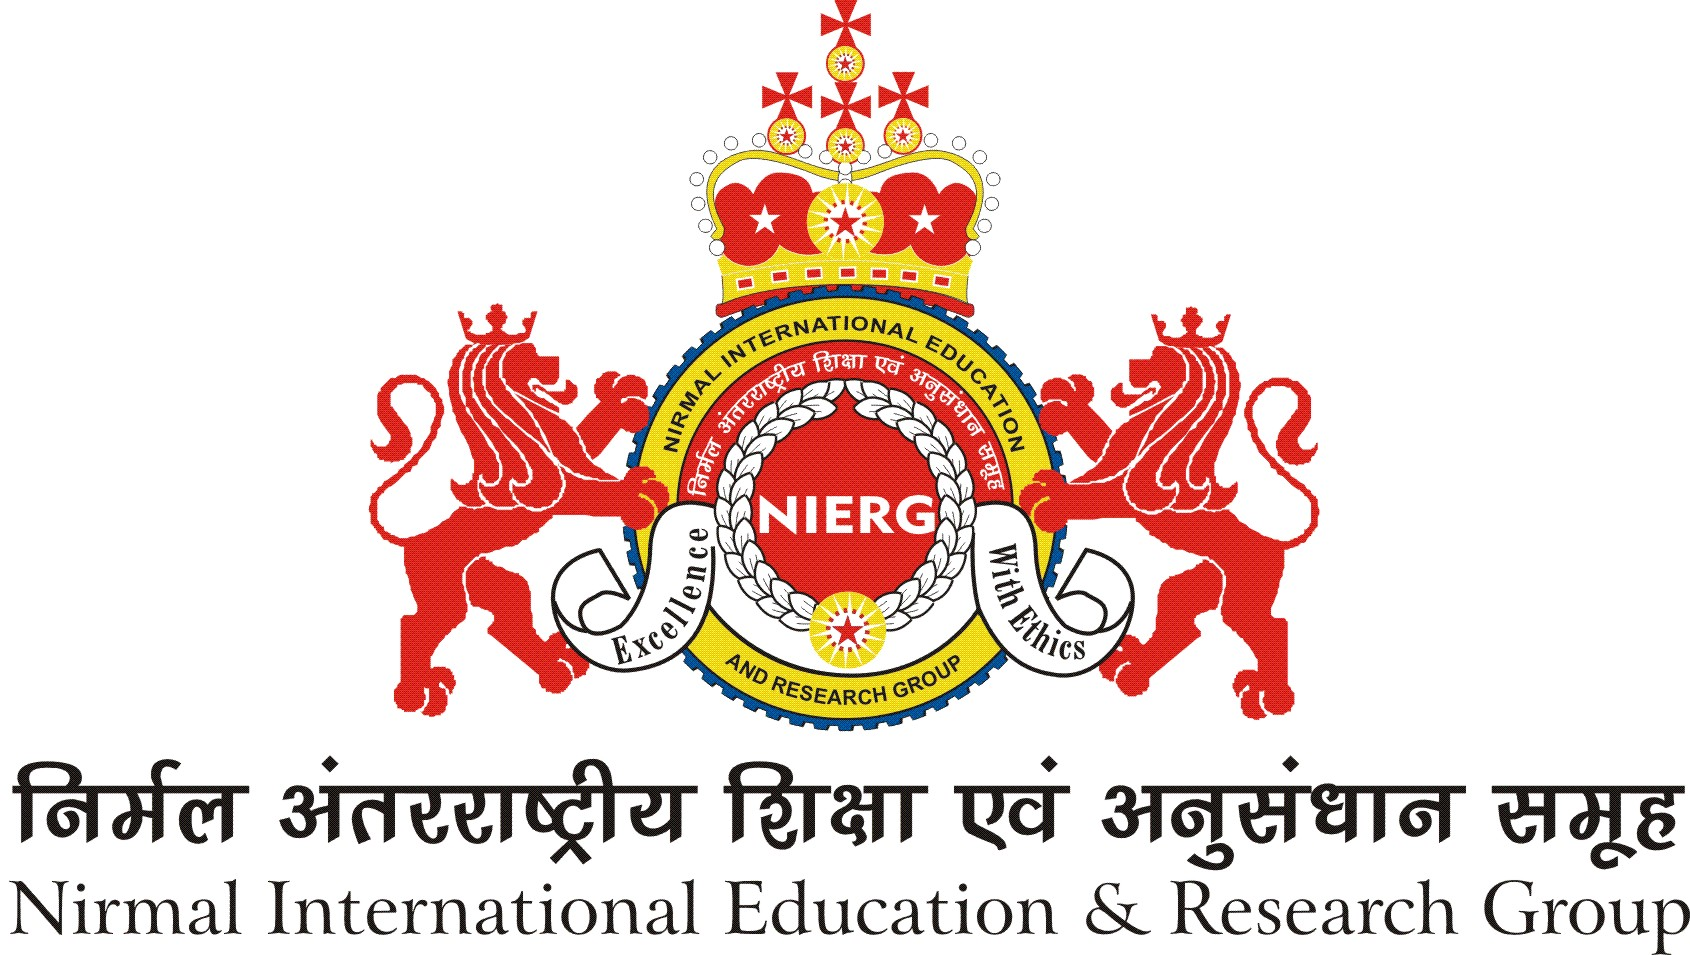 Nirmal International Education and Research Group